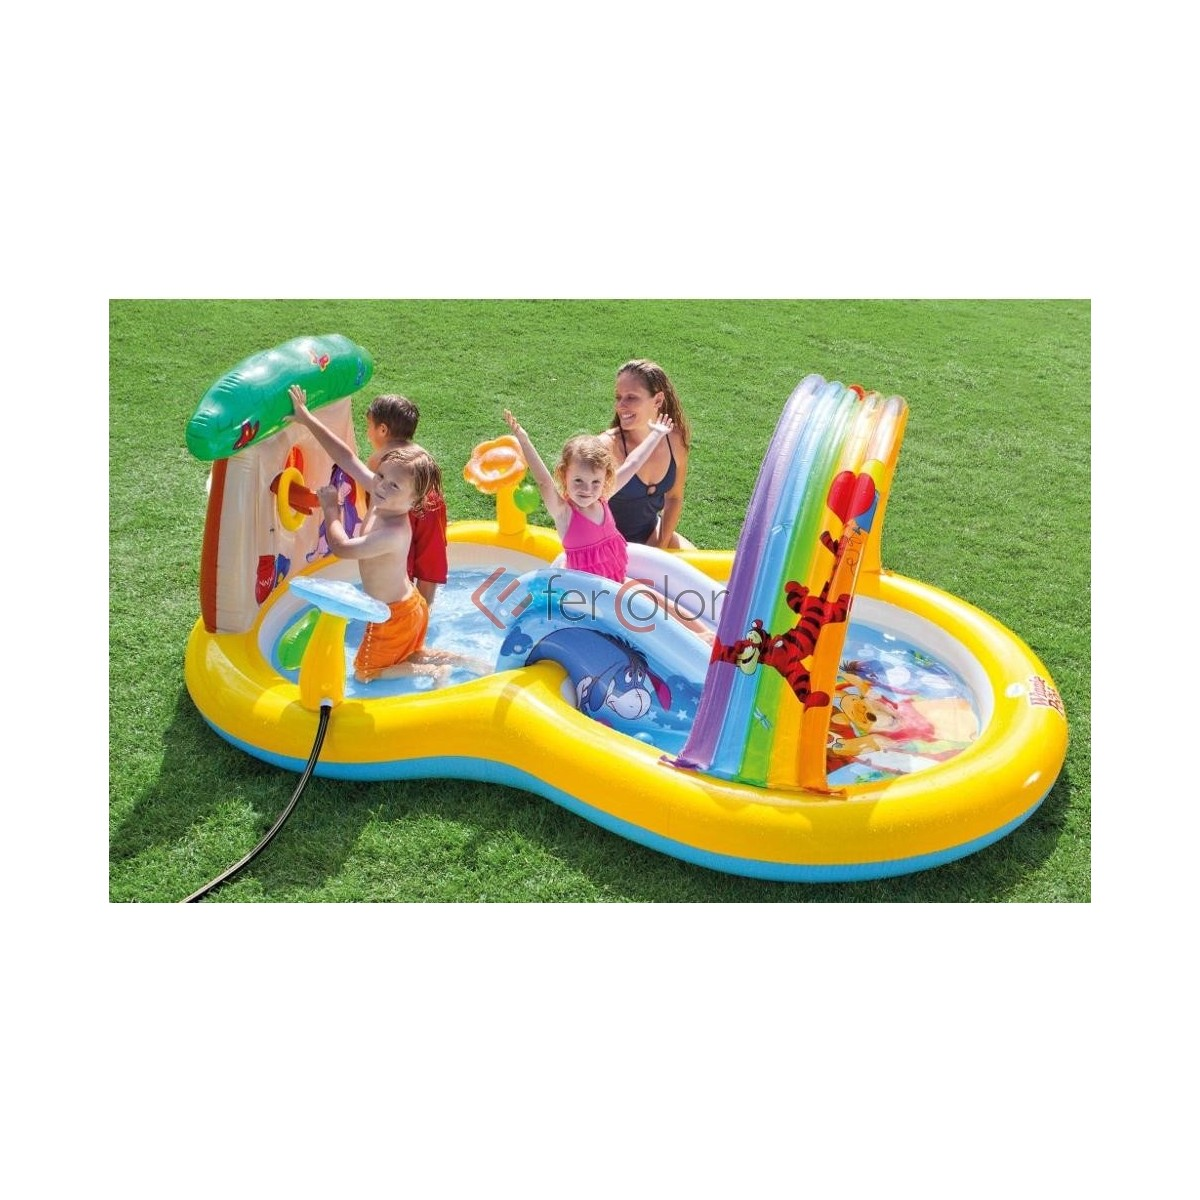 Piscina gonfiabile intex bambini playcenter winnie the pooh art 57136 ferramenta fercolor - Intex piscina gonfiabile ...